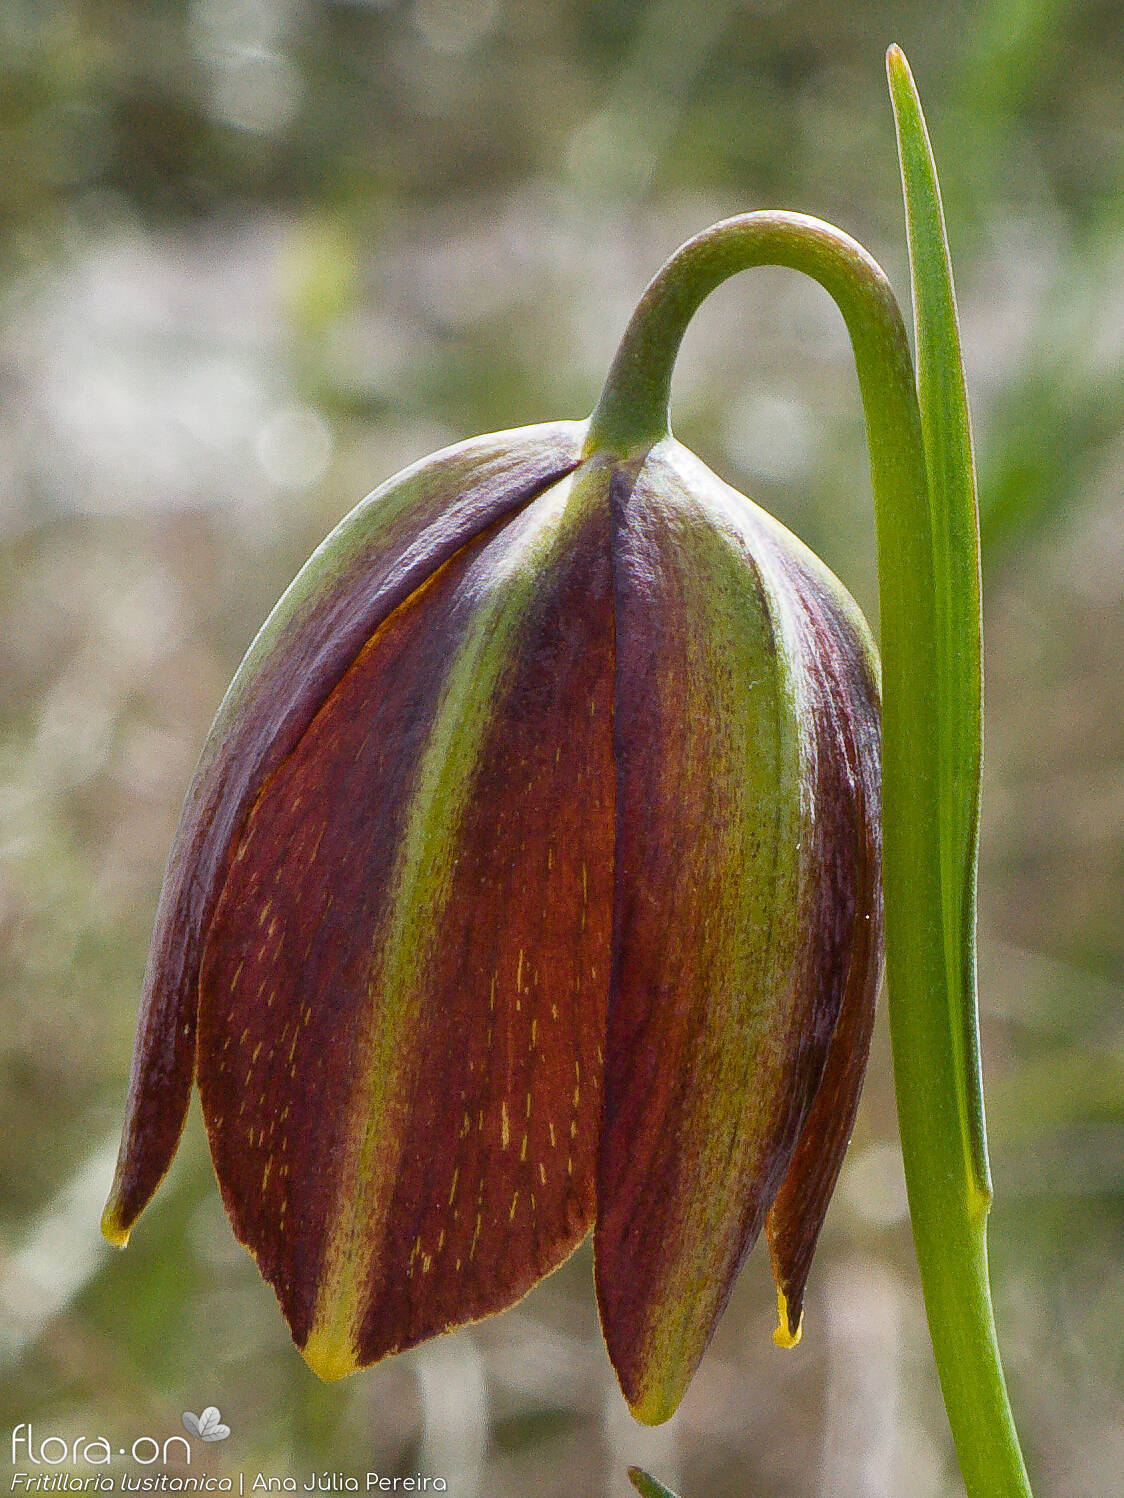 Fritillaria lusitanica - Flor (close-up) | Ana Júlia Pereira; CC BY-NC 4.0